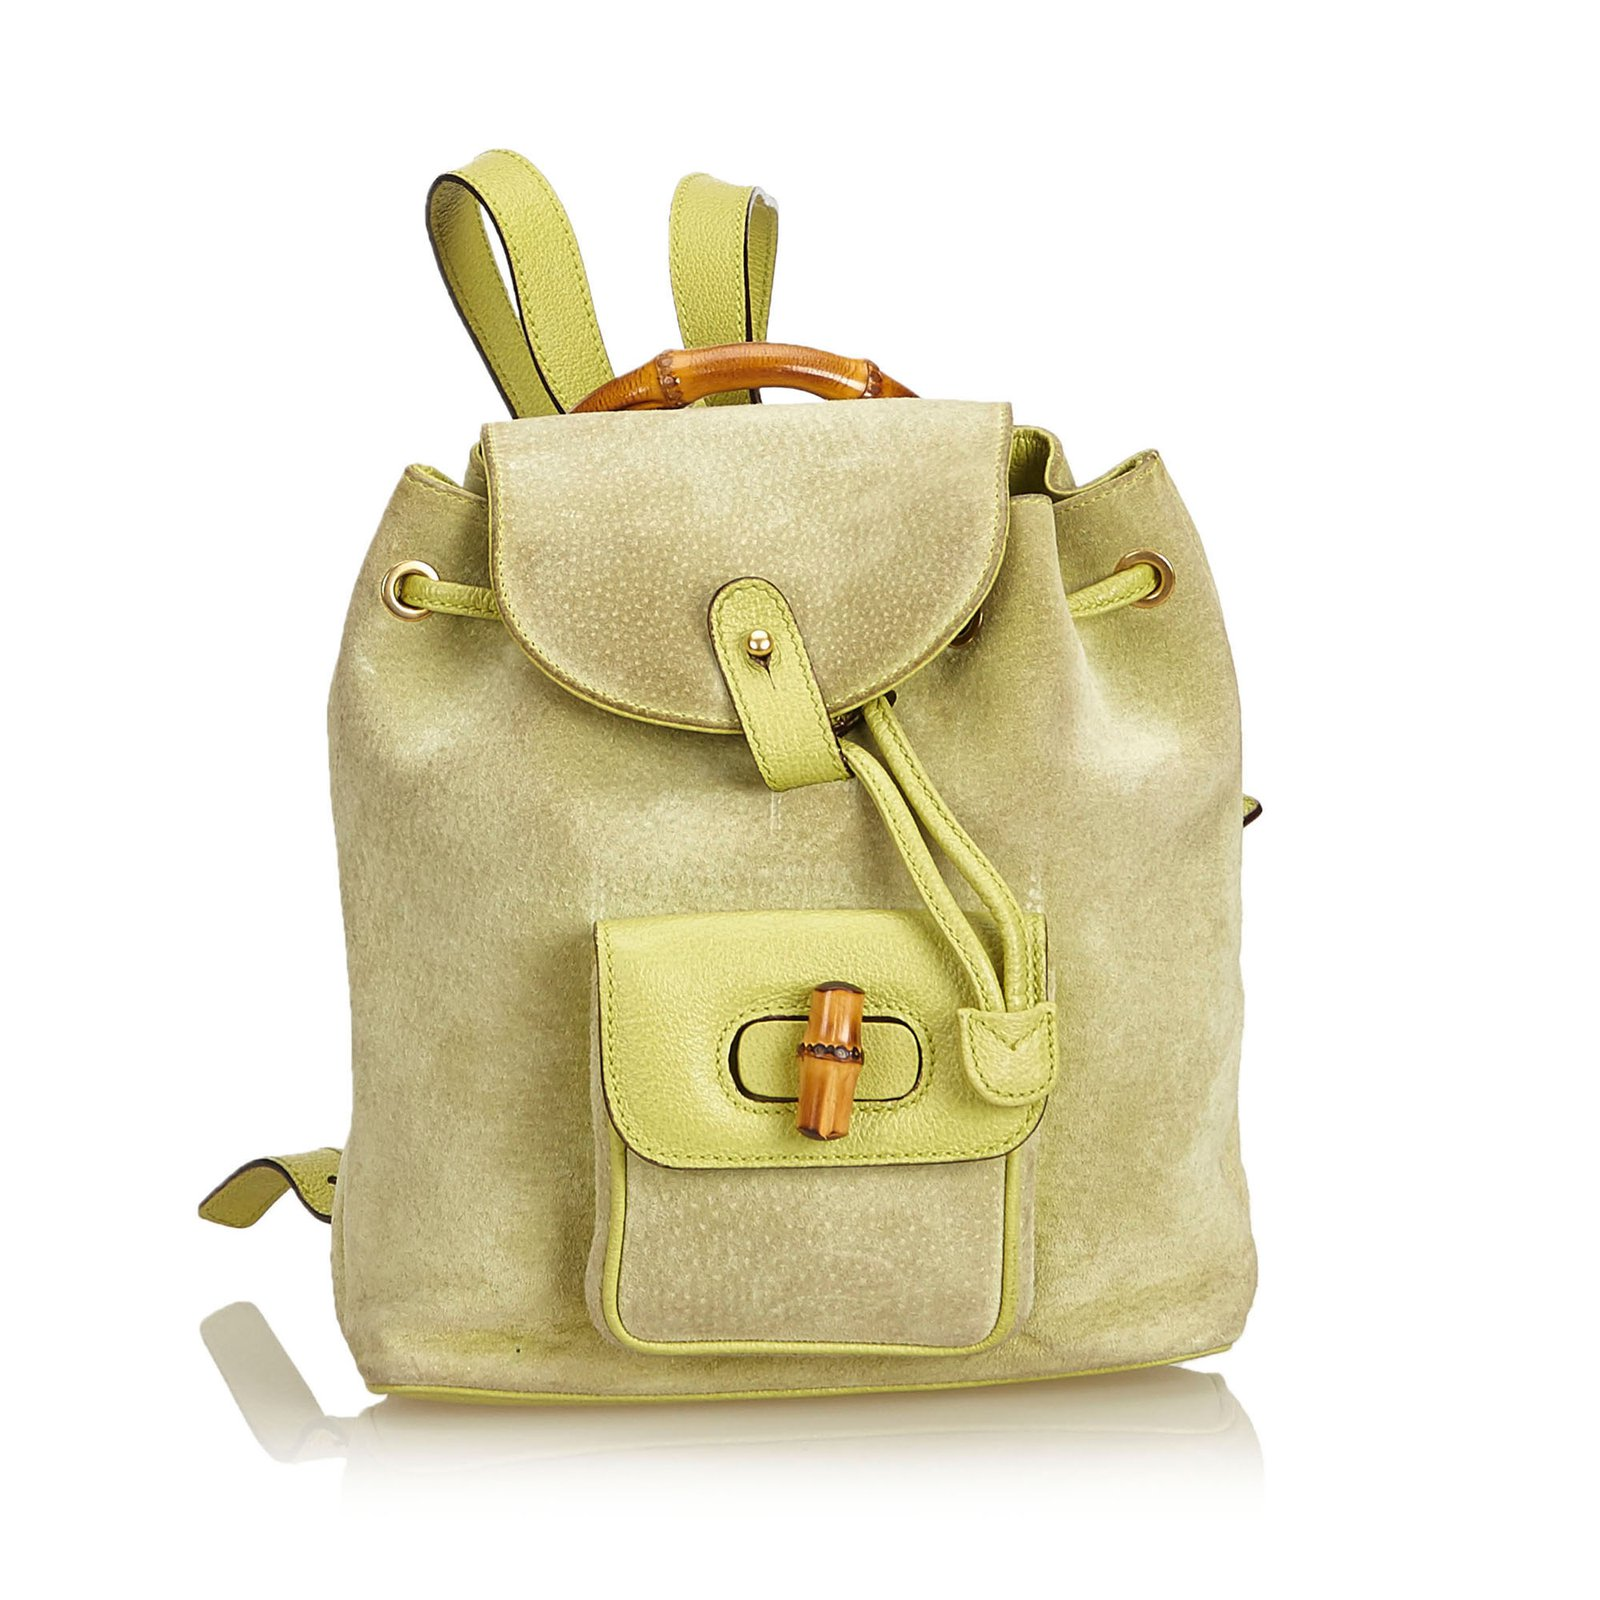 8e9ec4627d13 Gucci Bamboo Suede Drawstring Backpack Backpacks Suede,Leather,Other  Green,Light green ref